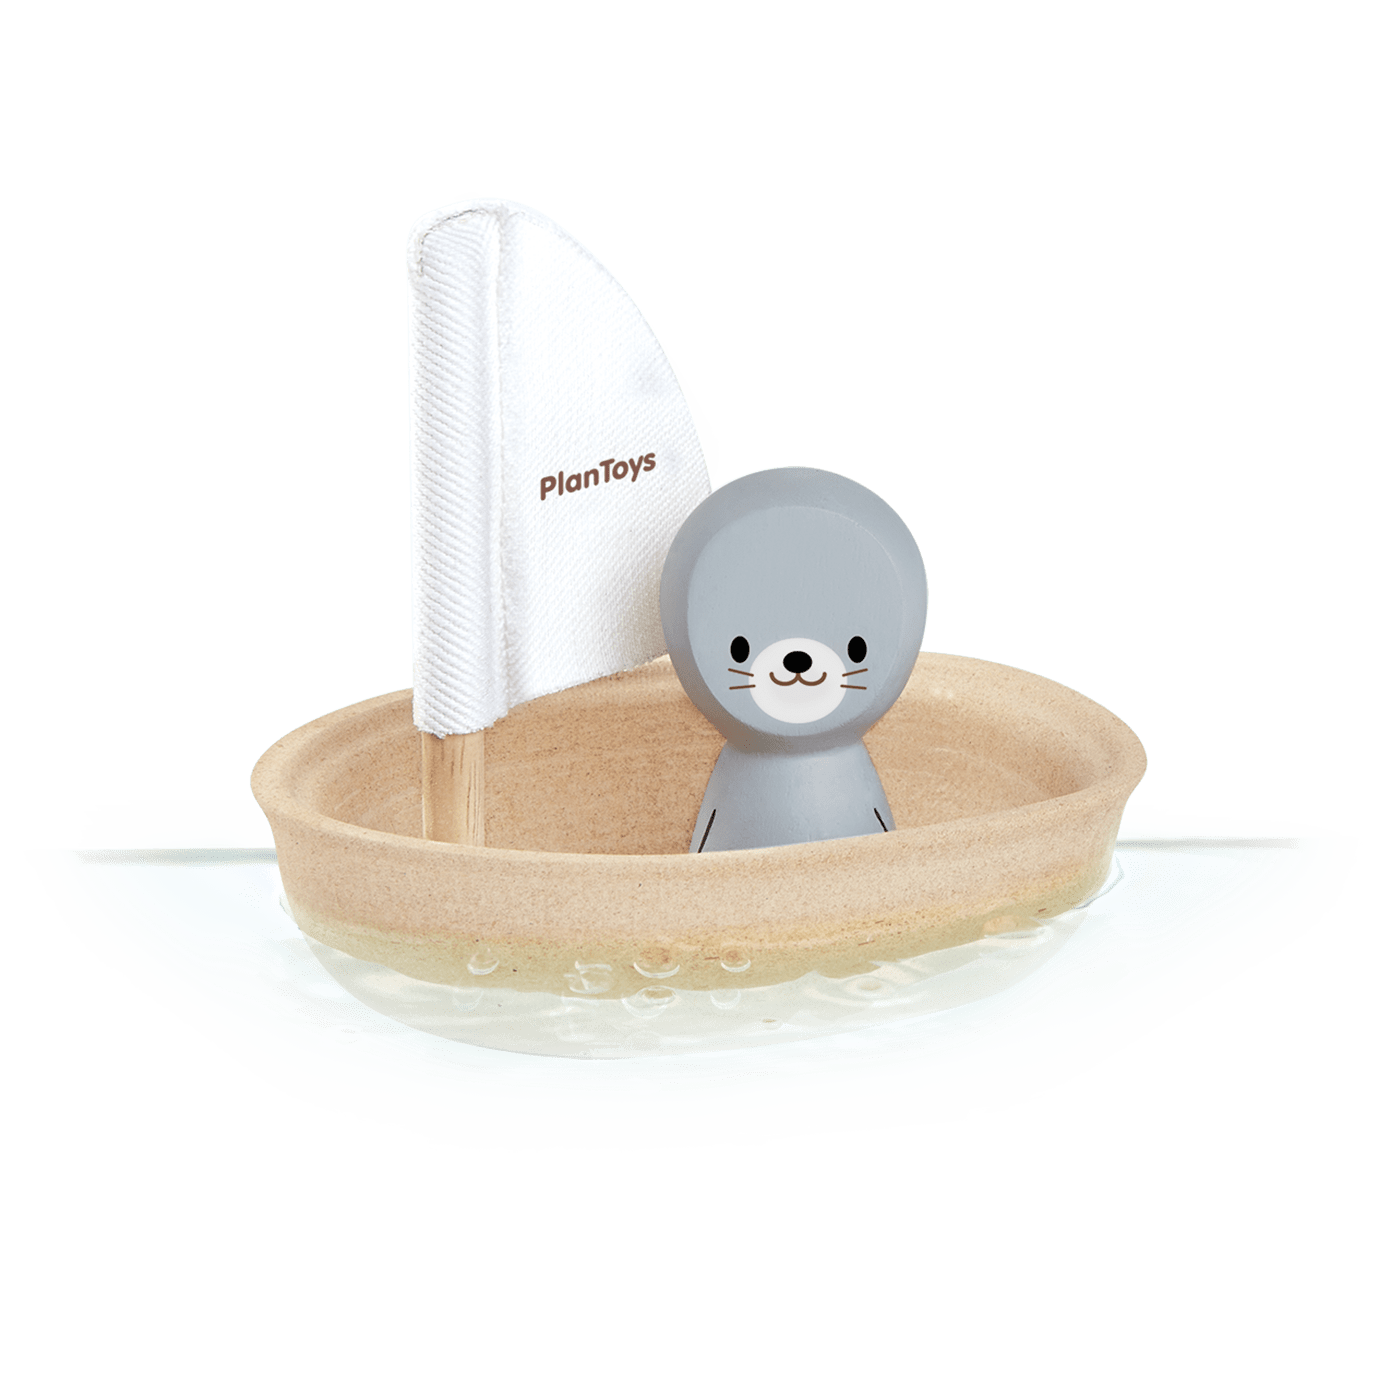 5710_PlanToys_SAILING_BOAT-SEAL_Water_Play_Imagination_Language_and_Communications_Explore_Fine_Motor_12m_Wooden_toys_Education_toys_Safety_Toys_Non-toxic_0.png